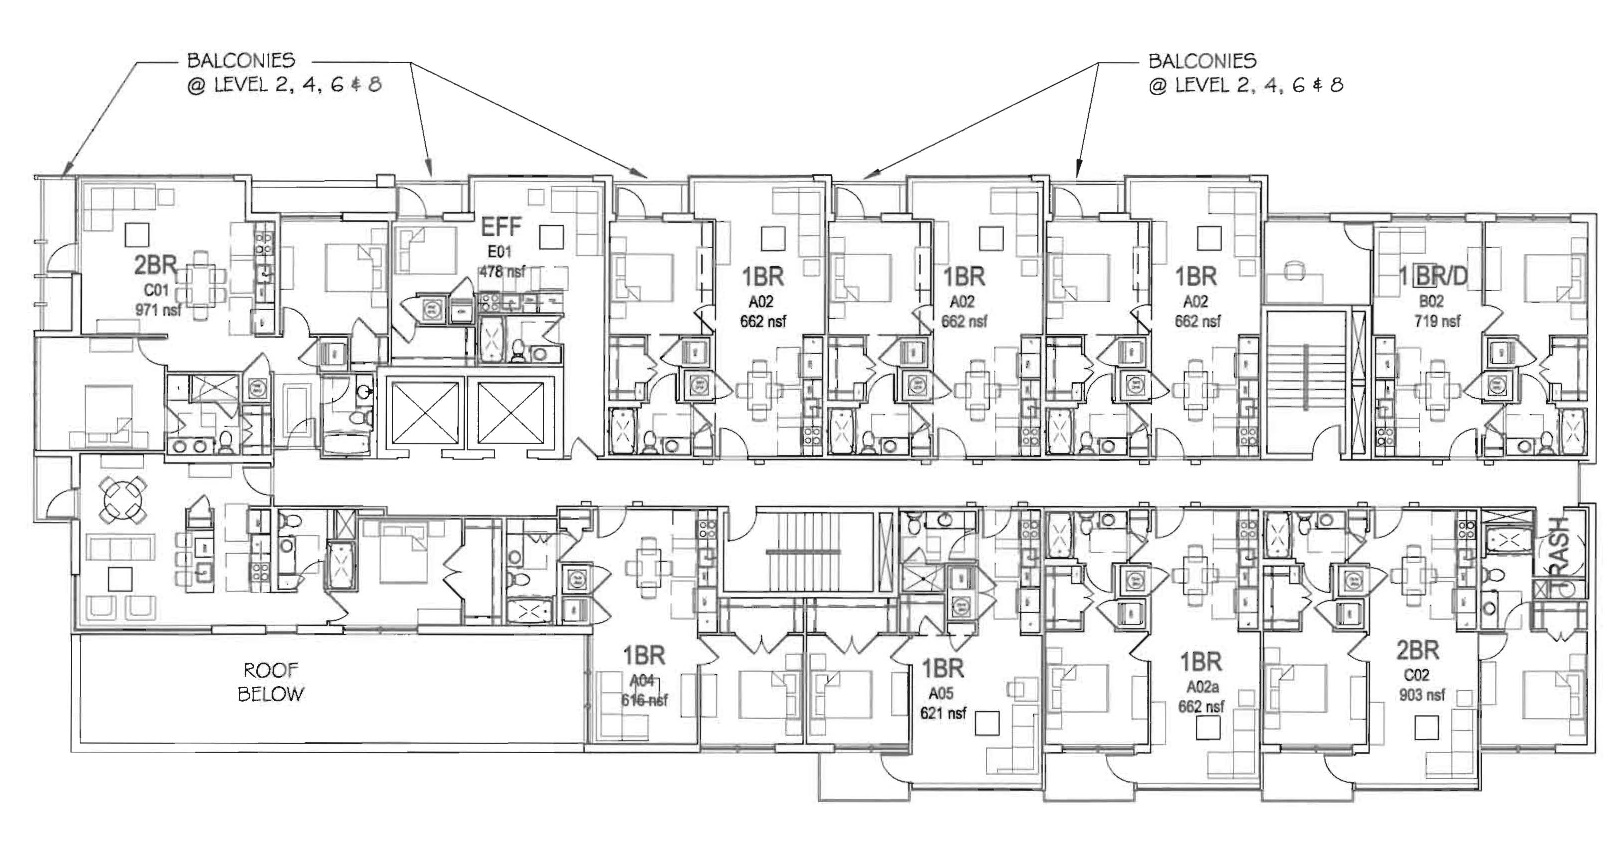 Revised plans for apartment building at 15th v for Apartment plans building